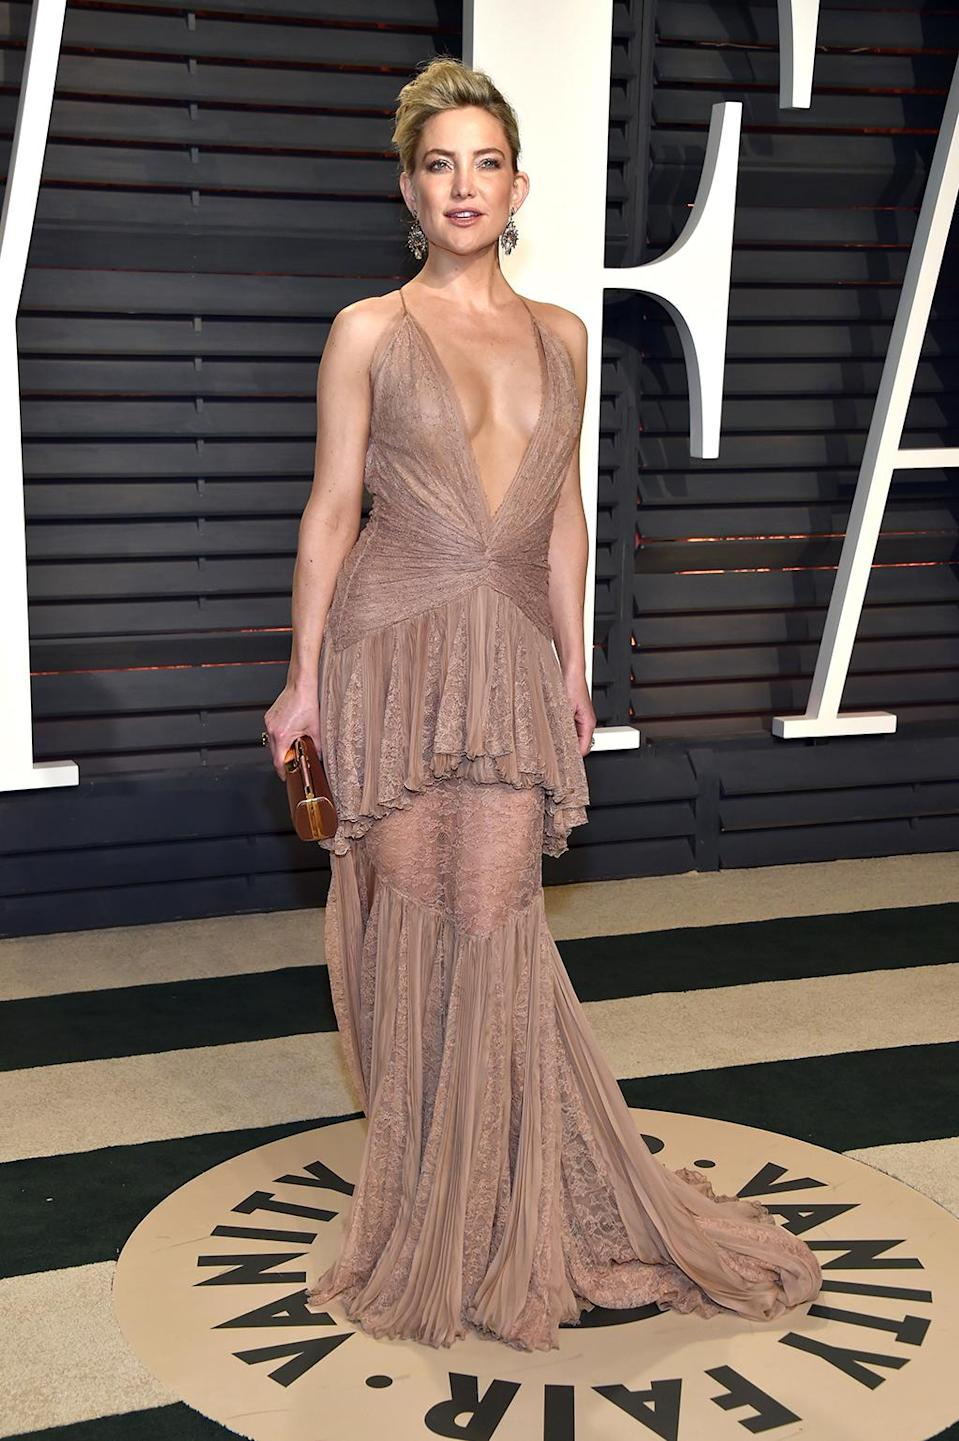 <p>Kate Hudson attends the 2017 Vanity Fair Oscar Party hosted by Graydon Carter at Wallis Annenberg Center for the Performing Arts on February 26, 2017 in Beverly Hills, California. (Photo by Pascal Le Segretain/Getty Images) </p>